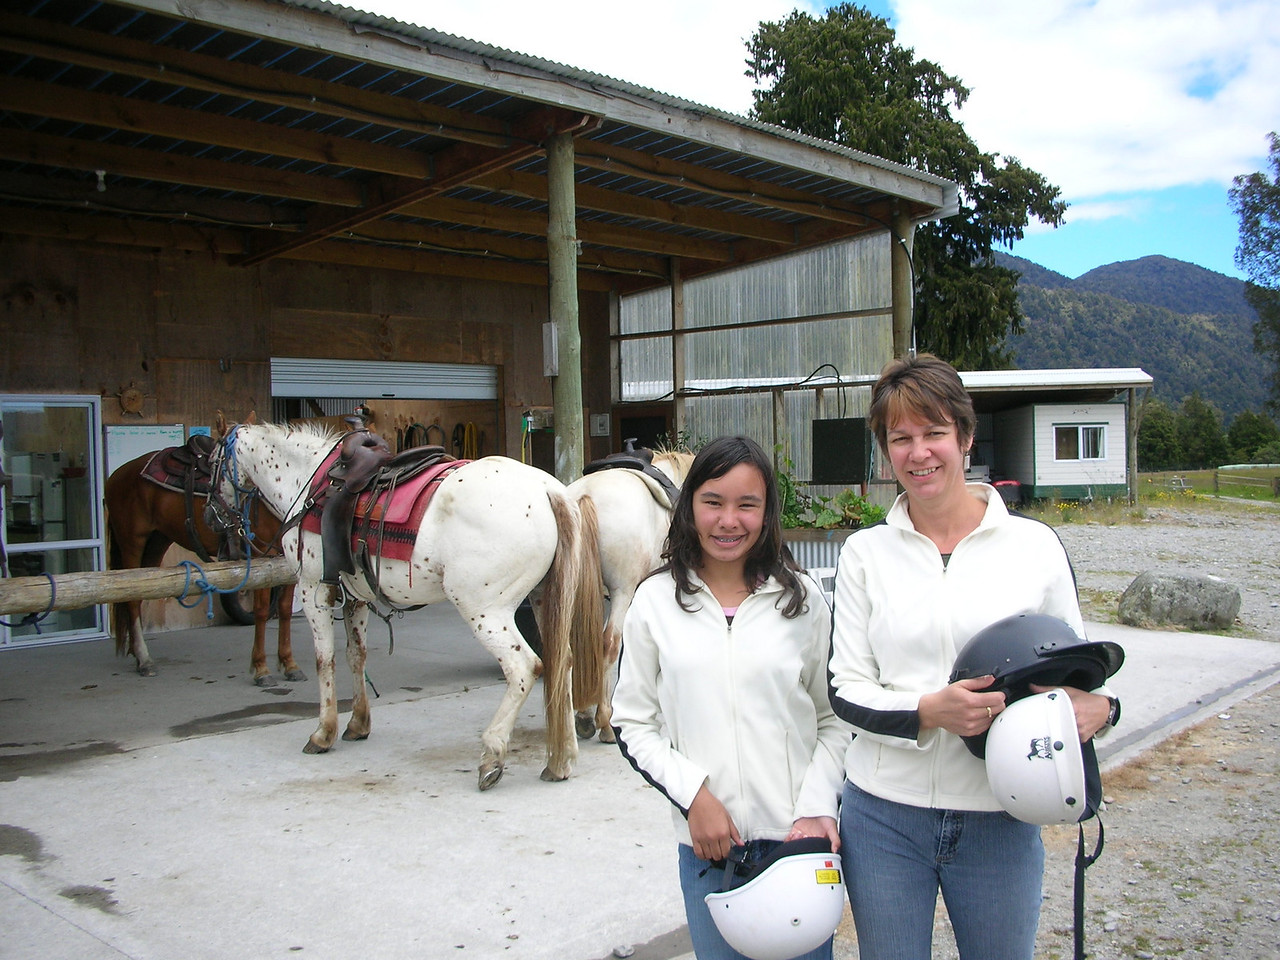 Ila and Naomi at the horse trekking corral.